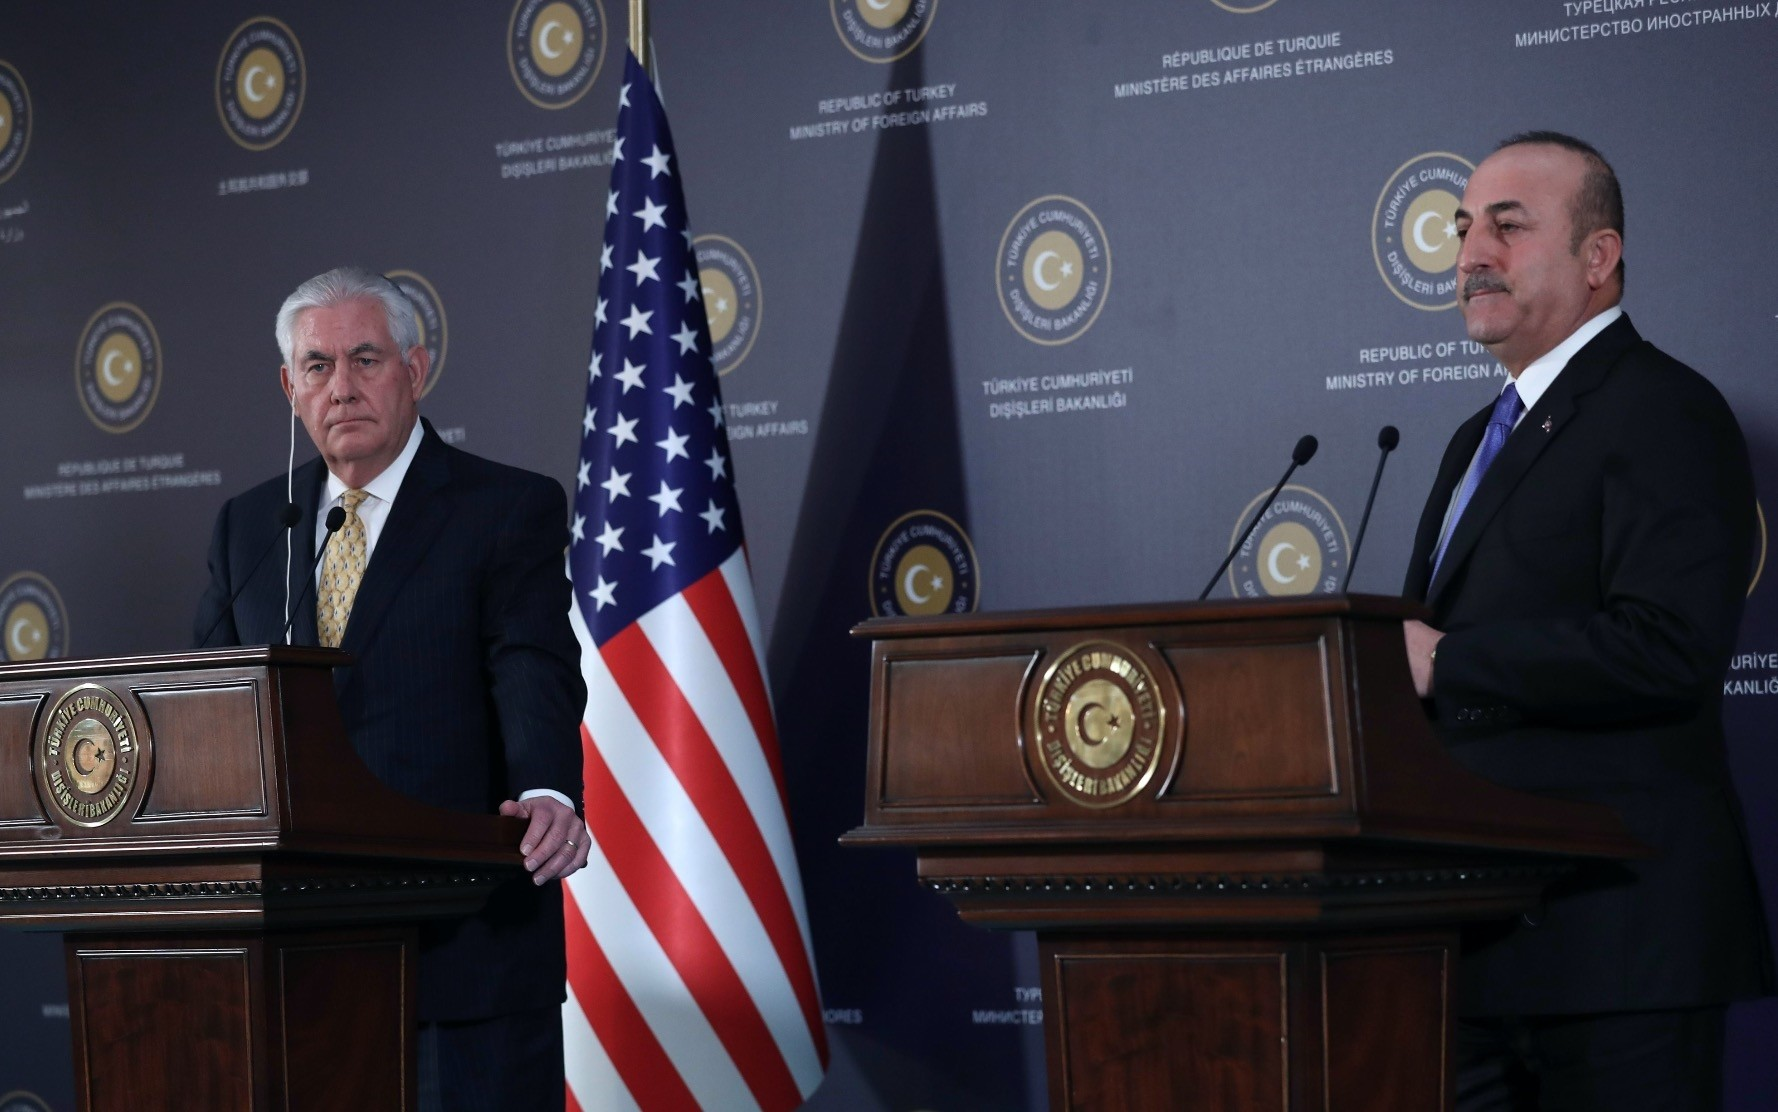 Foreign Minister Mevlu00fct u00c7avuu015fou011flu (R)and U.S. Secretary of State Rex Tillerson listen to questions during a joint press conference following their meeting, Ankara, Feb. 16.